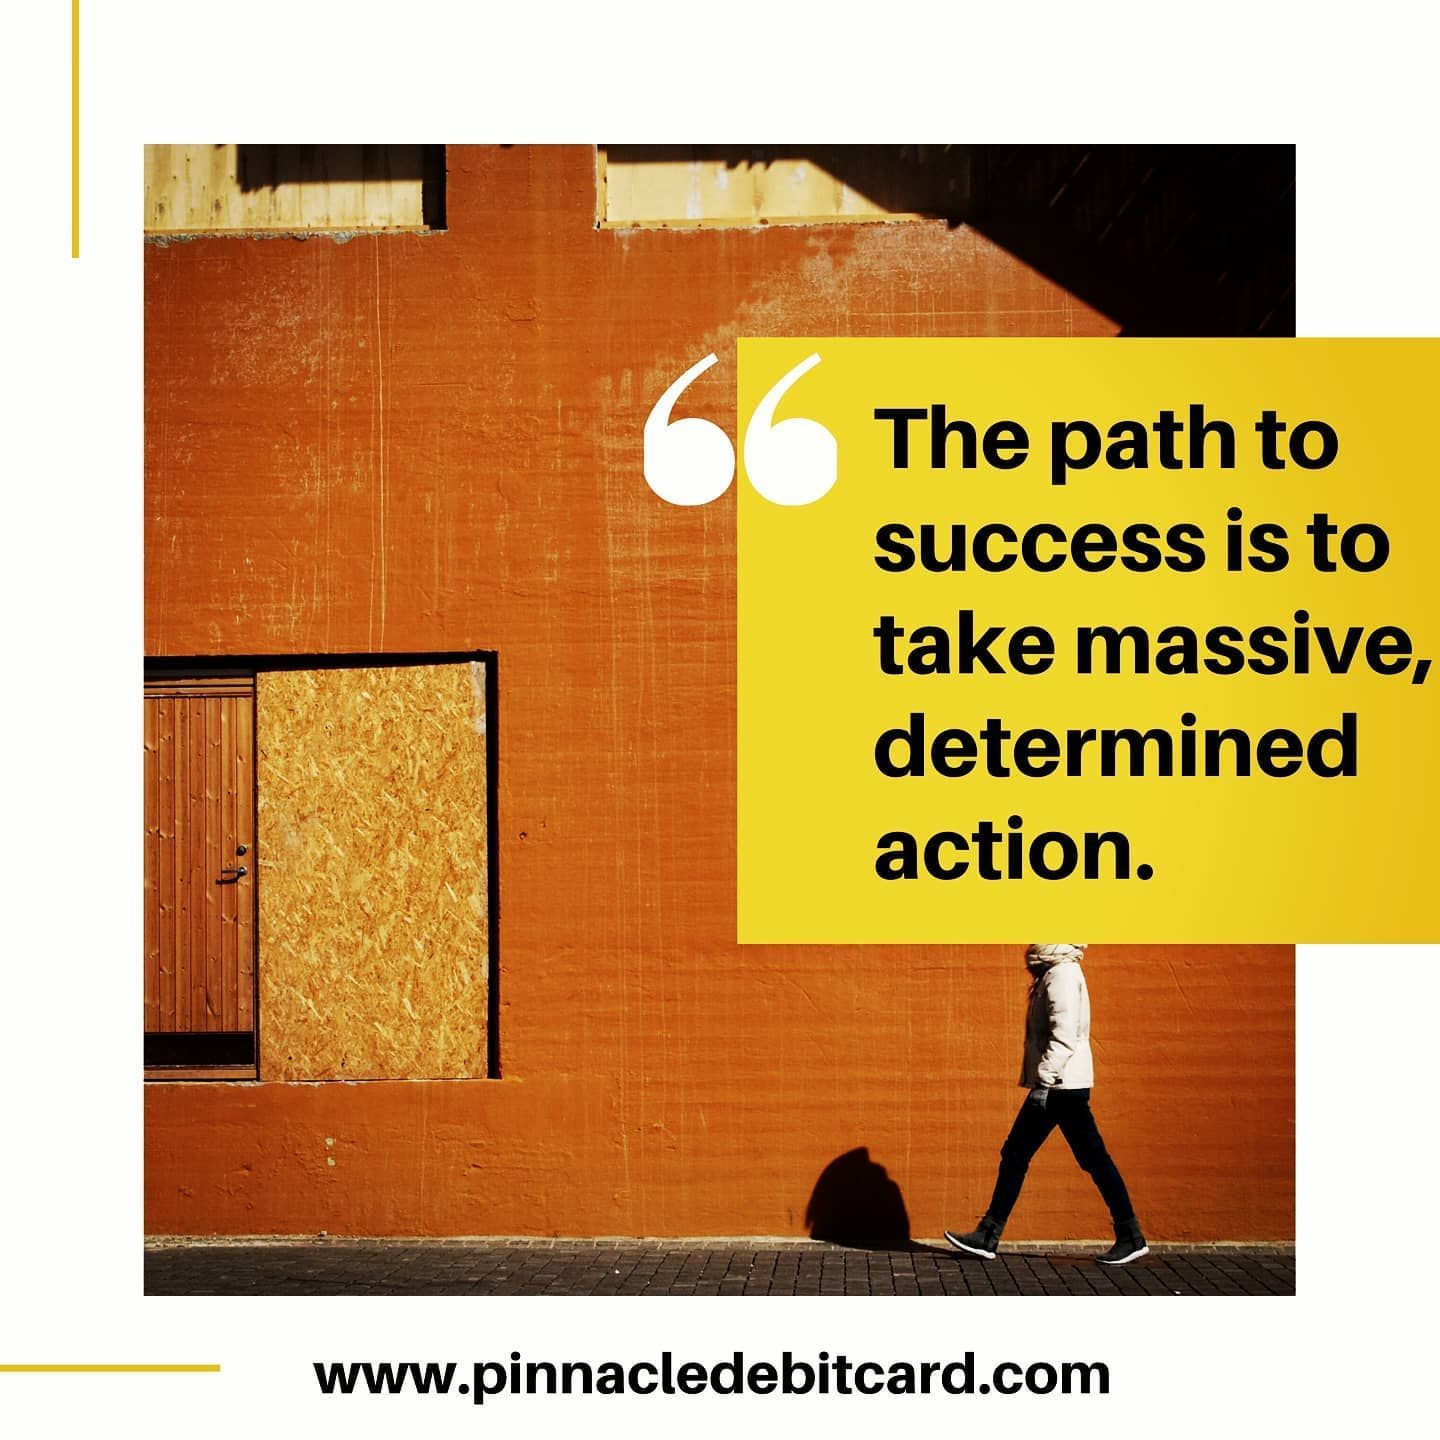 A Thing In Motion Continues To Stay In Motion Start Now Pinnacledebitcard Nocreditcheck Wealth Bu Personal Finance Lessons Money Mindset Wealth Building